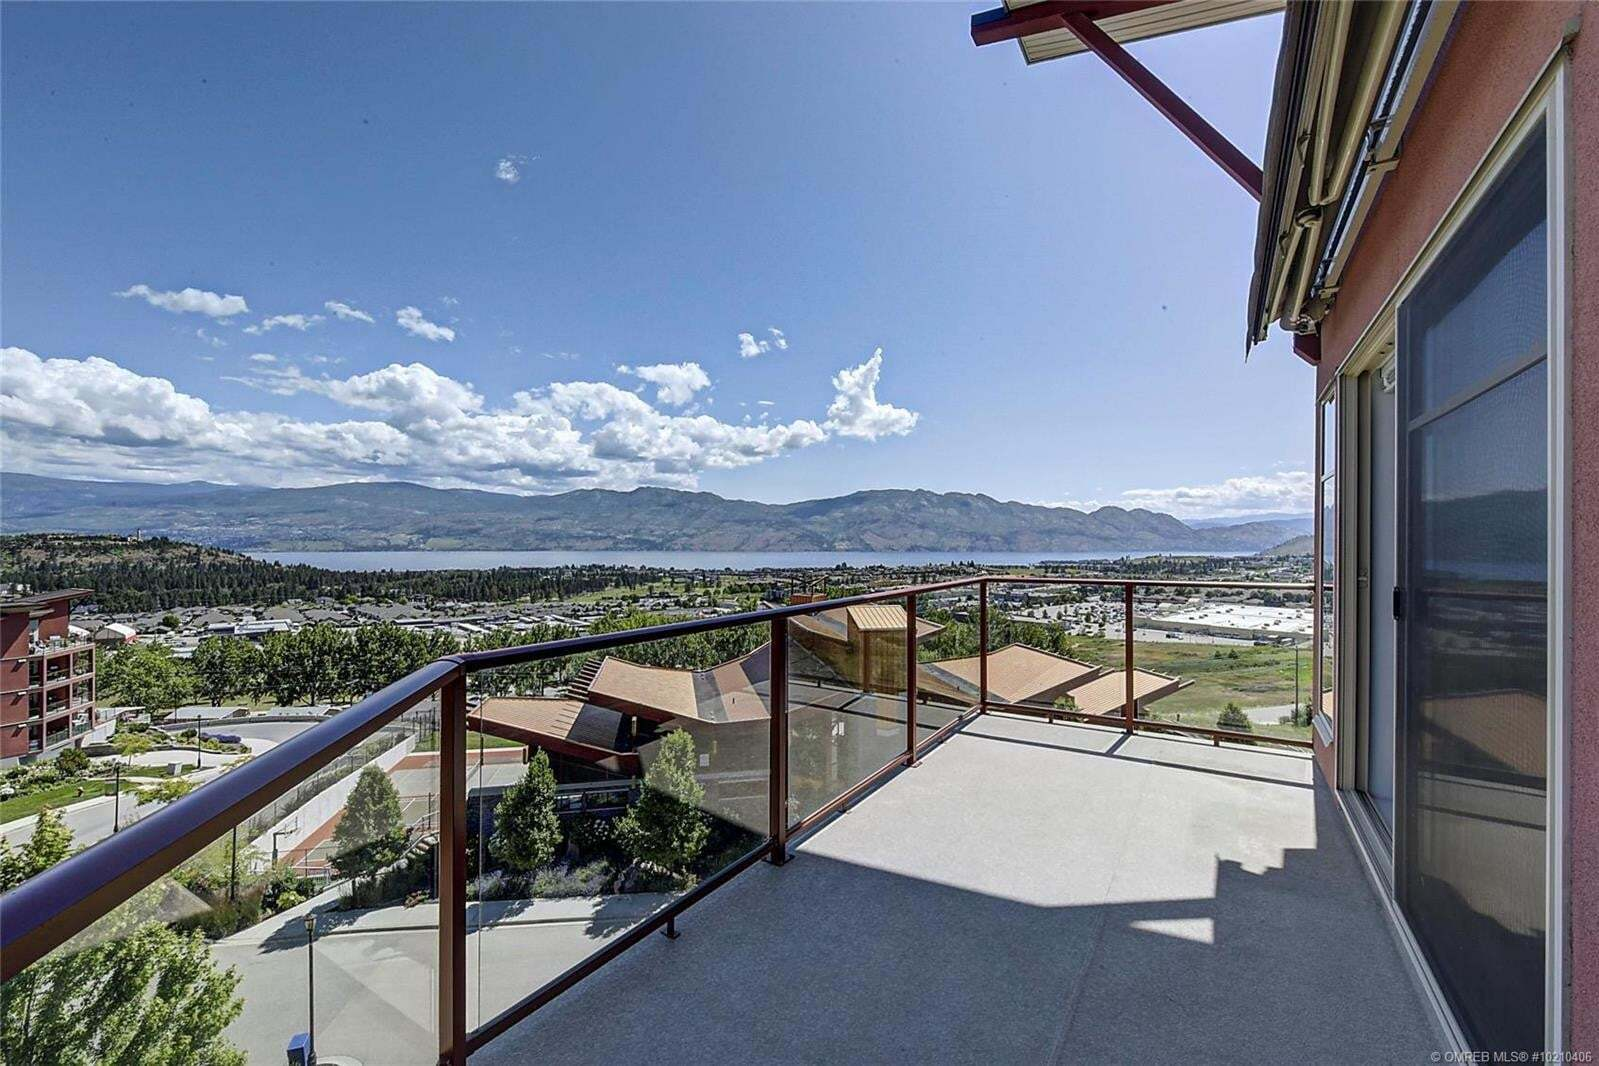 Condo for sale at 3220 Skyview Ln West Kelowna British Columbia - MLS: 10210406